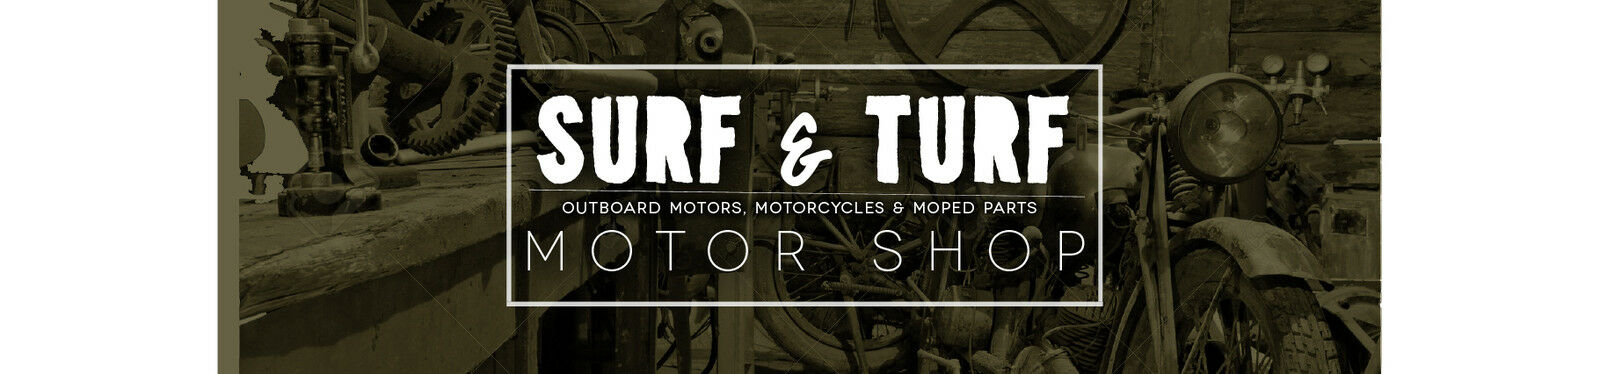 Surf and Turf Motor Shop